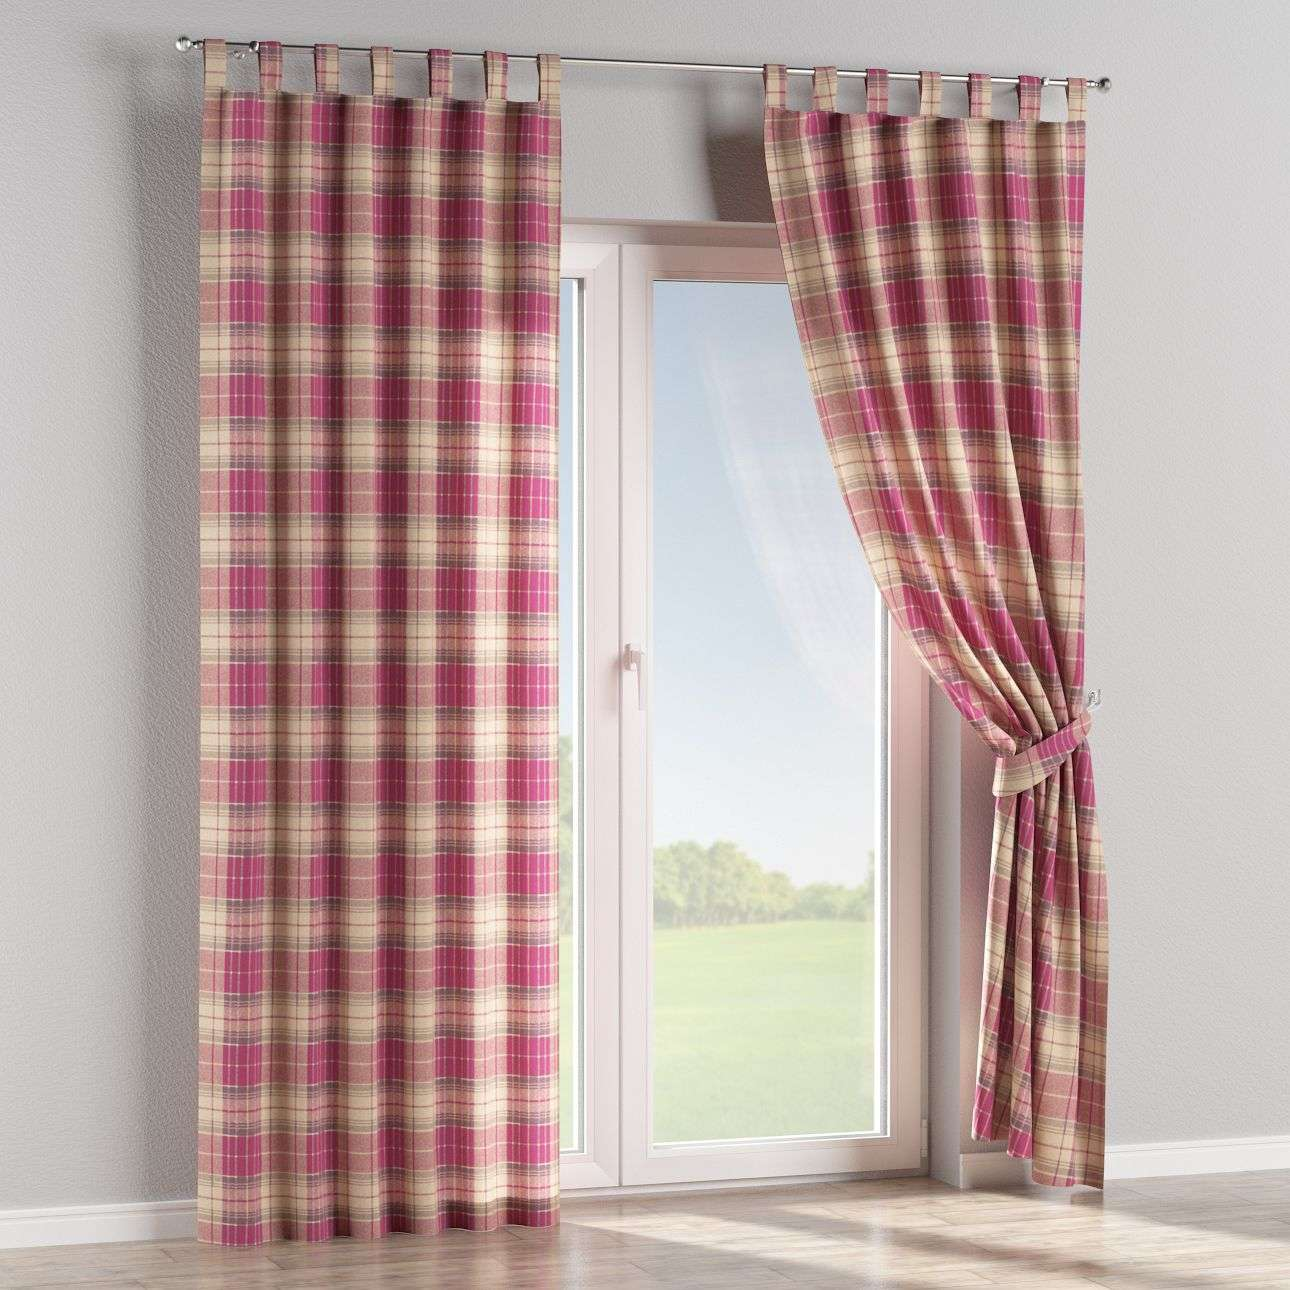 Tab top curtains in collection Mirella, fabric: 142-07